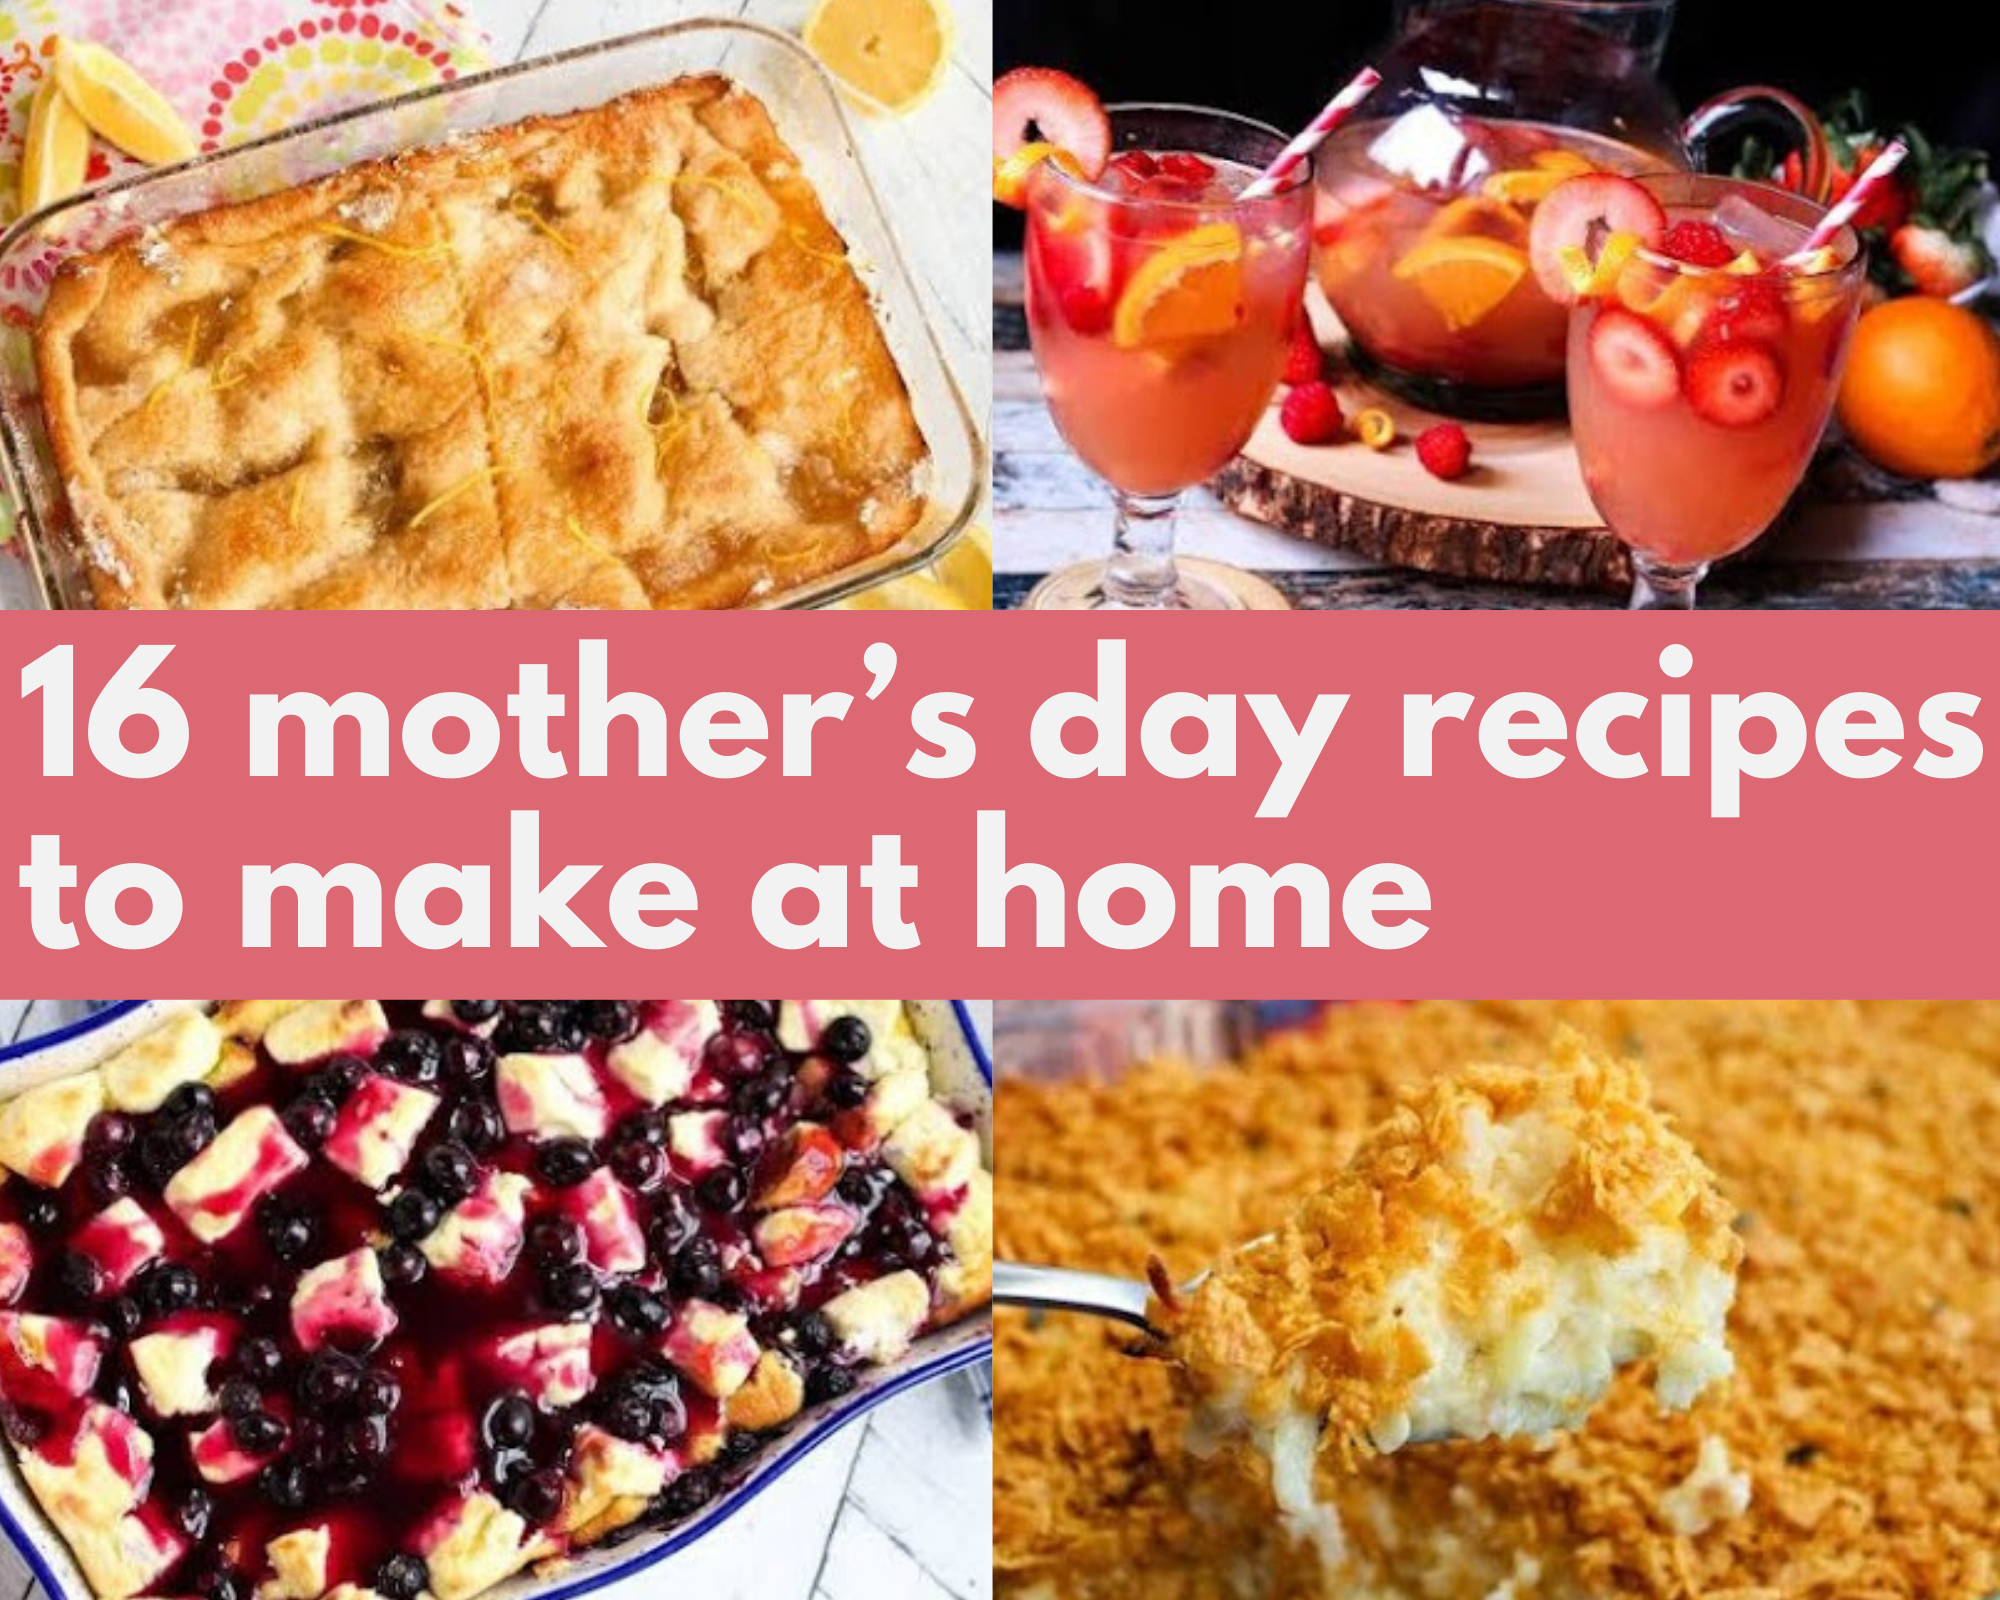 Recipes to make on Mother's Day